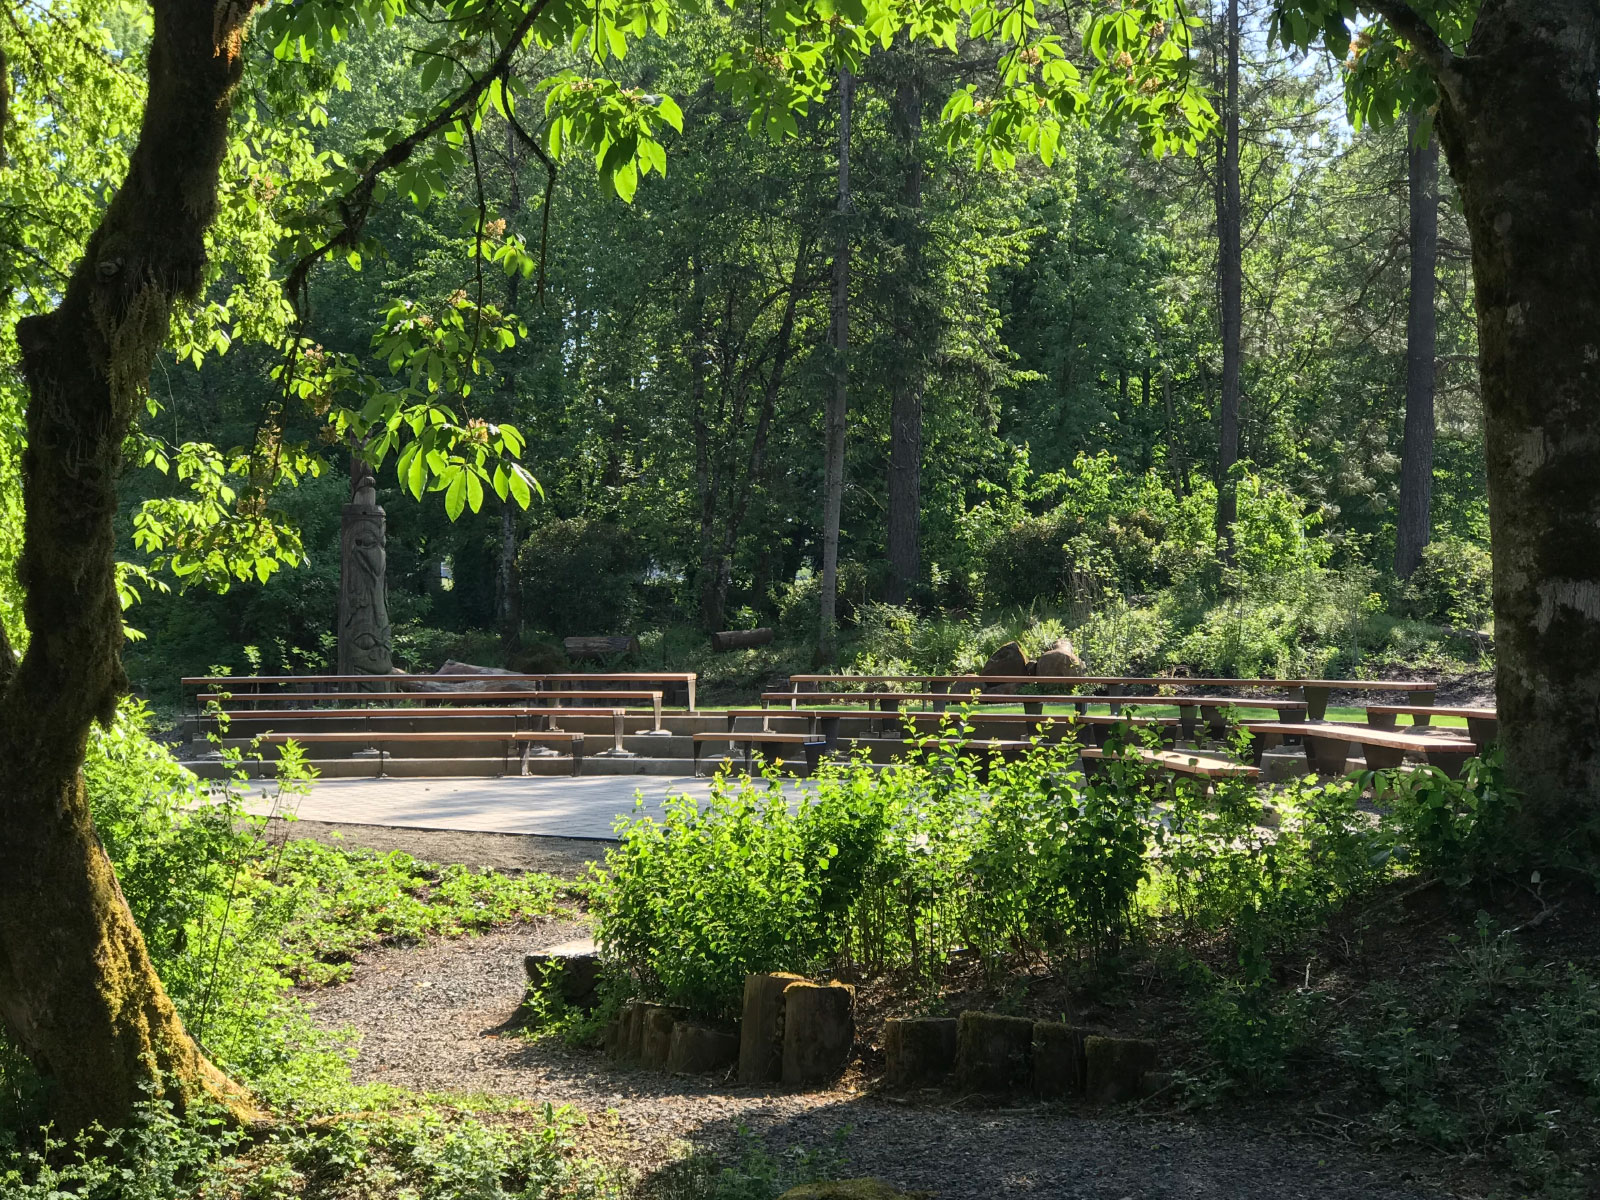 Trees, grass and a gravel path in front of the ELC amphitheater with rows of seats, at the Oregon City campus